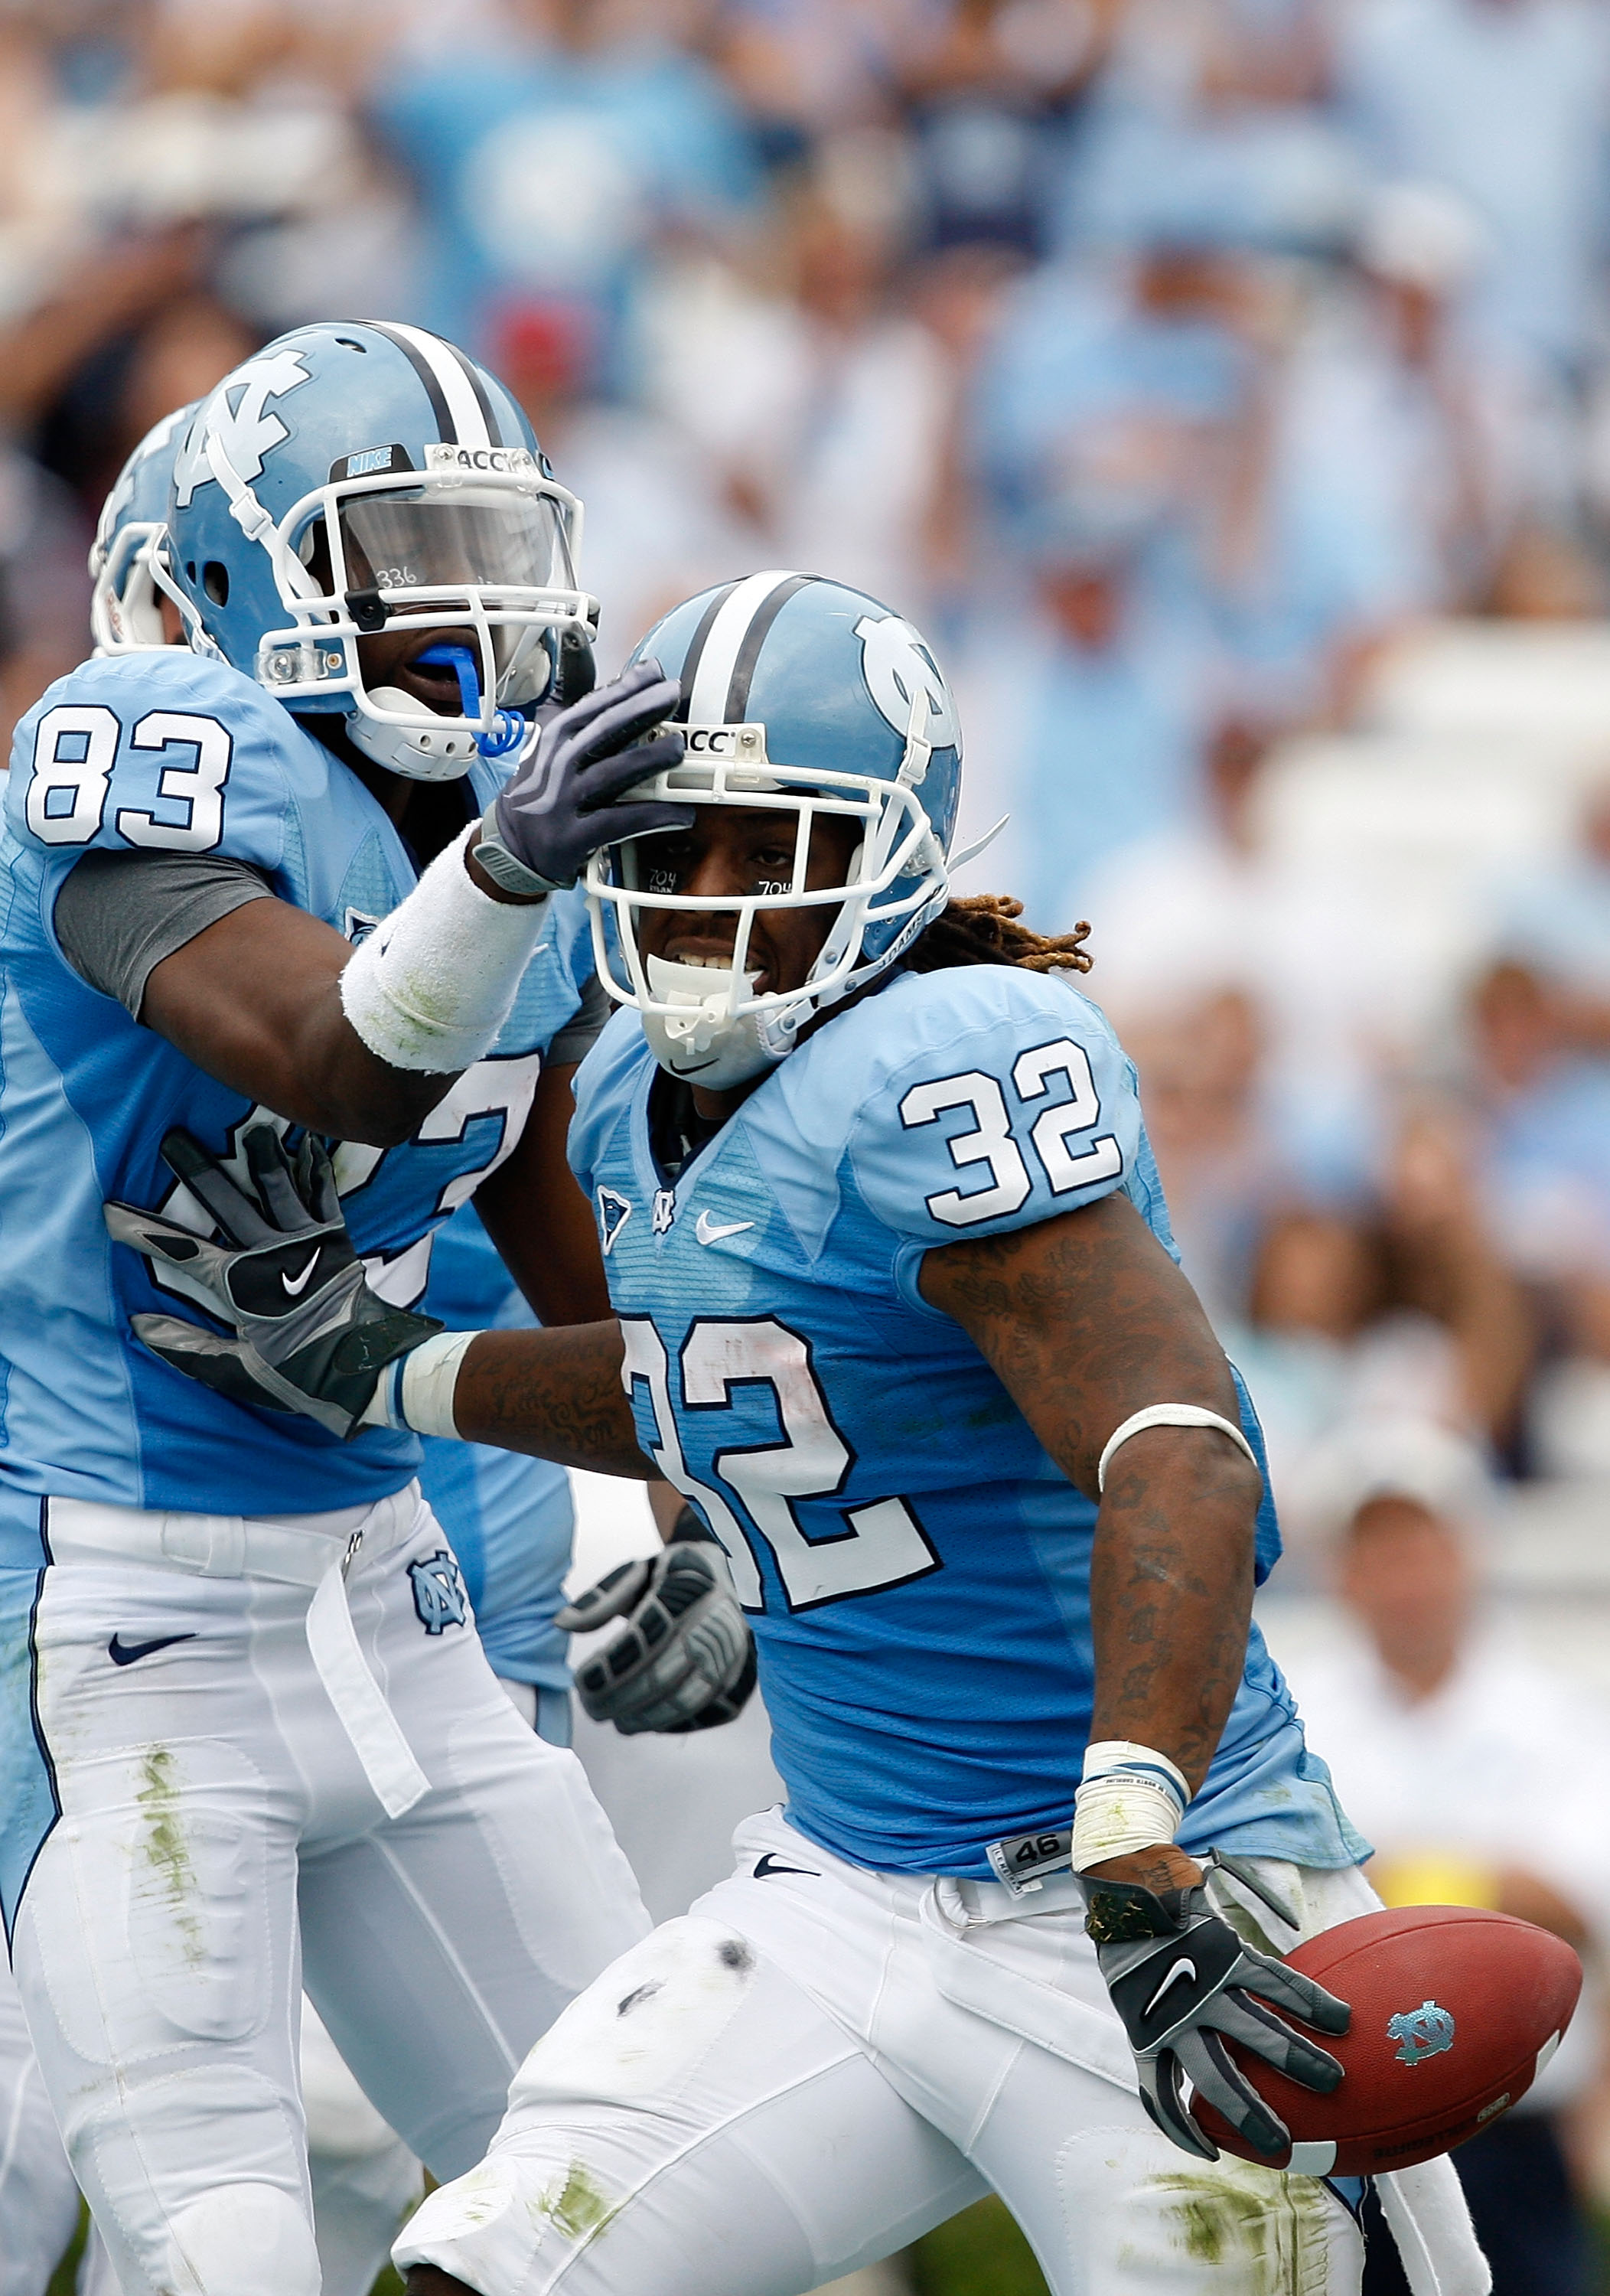 CHAPEL HILL, NC - OCTOBER 10:  Ryan Houston #32 of the North Carolina Tar Heels celebrates with teammate Dwight Jones #83 after scoring a touchdown against the Georgia Southern Eagles at Kenan Stadium on October 10, 2009 in Chapel Hill, North Carolina.  (